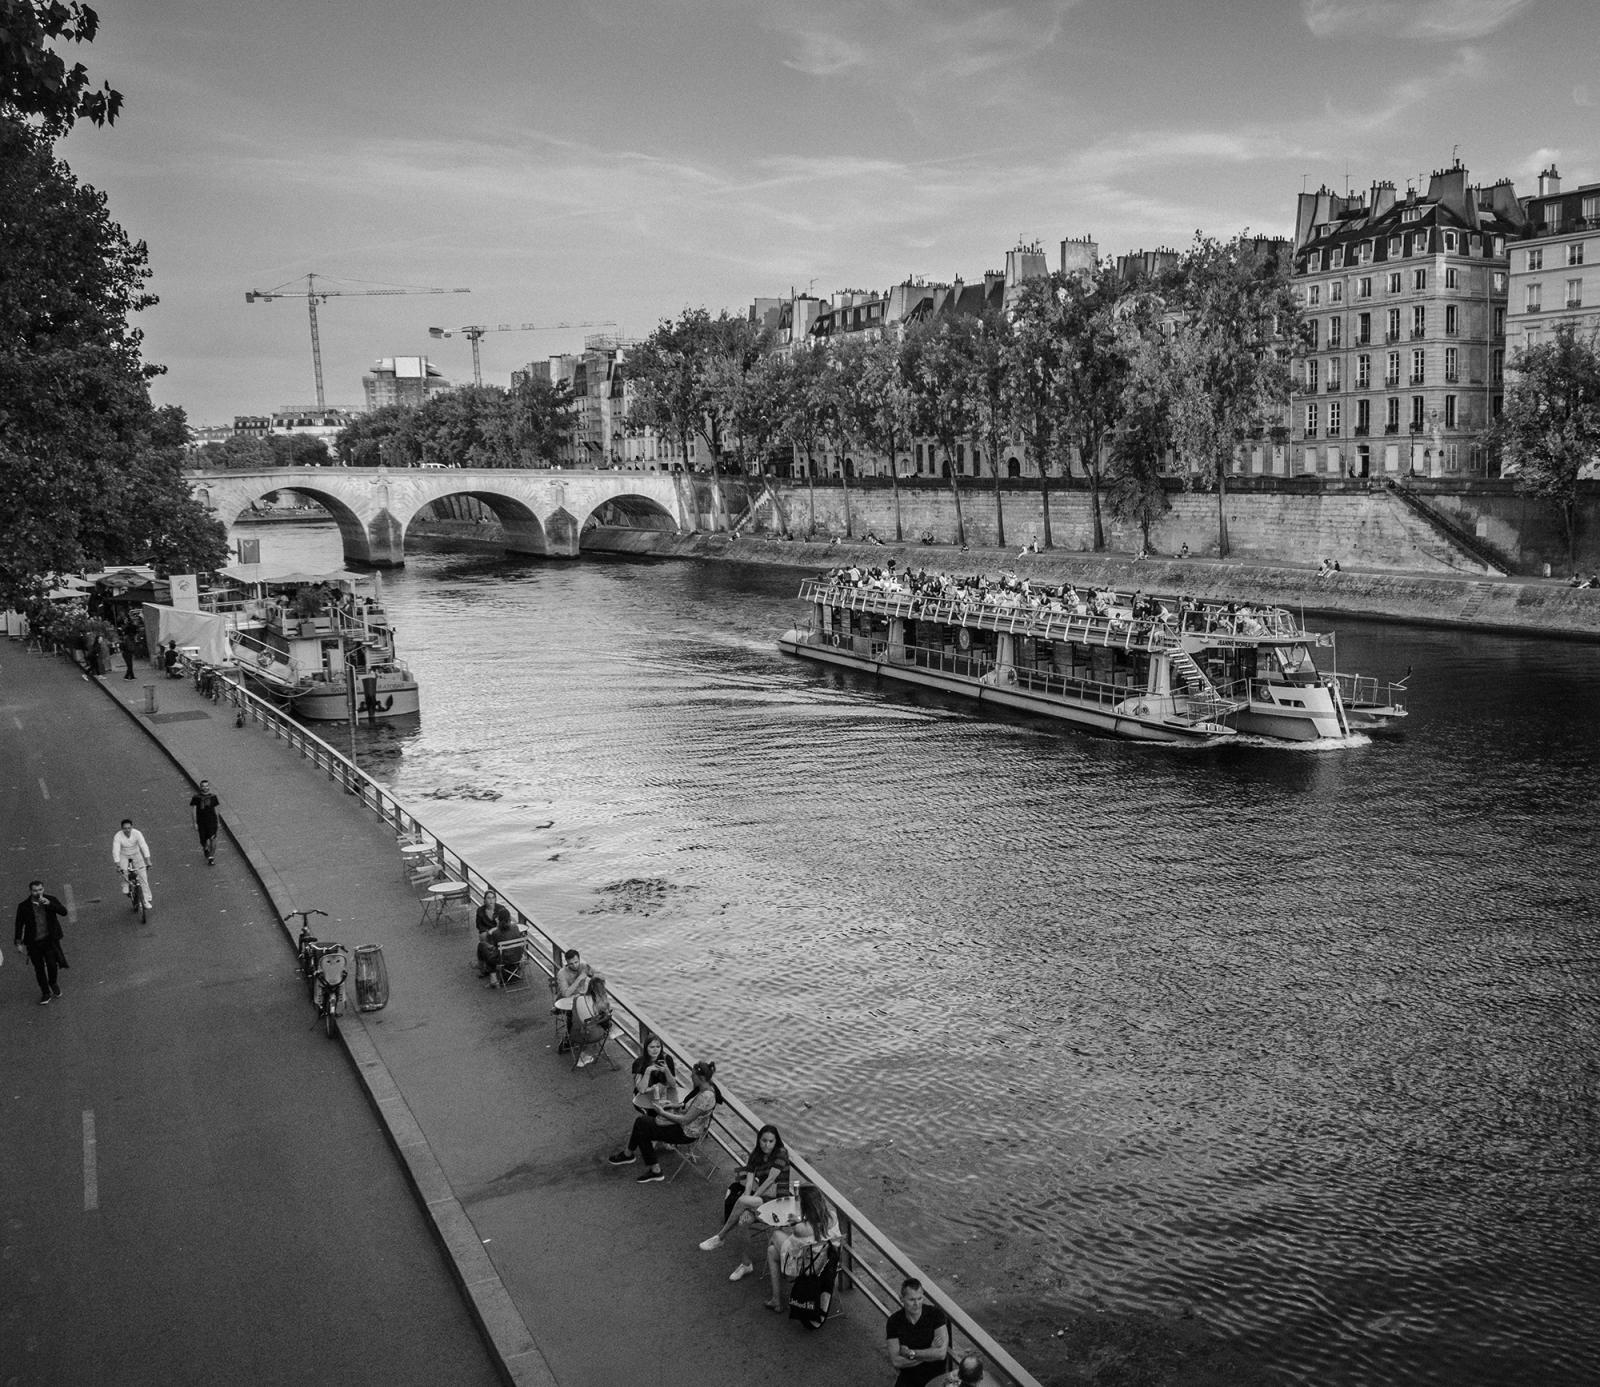 Photography image - Loading Paris_in_my_mind_____Recreating_Memories_Paris_commission_work__mouhamed_moustapha__mousty__pondicherry_to_paris.jpg